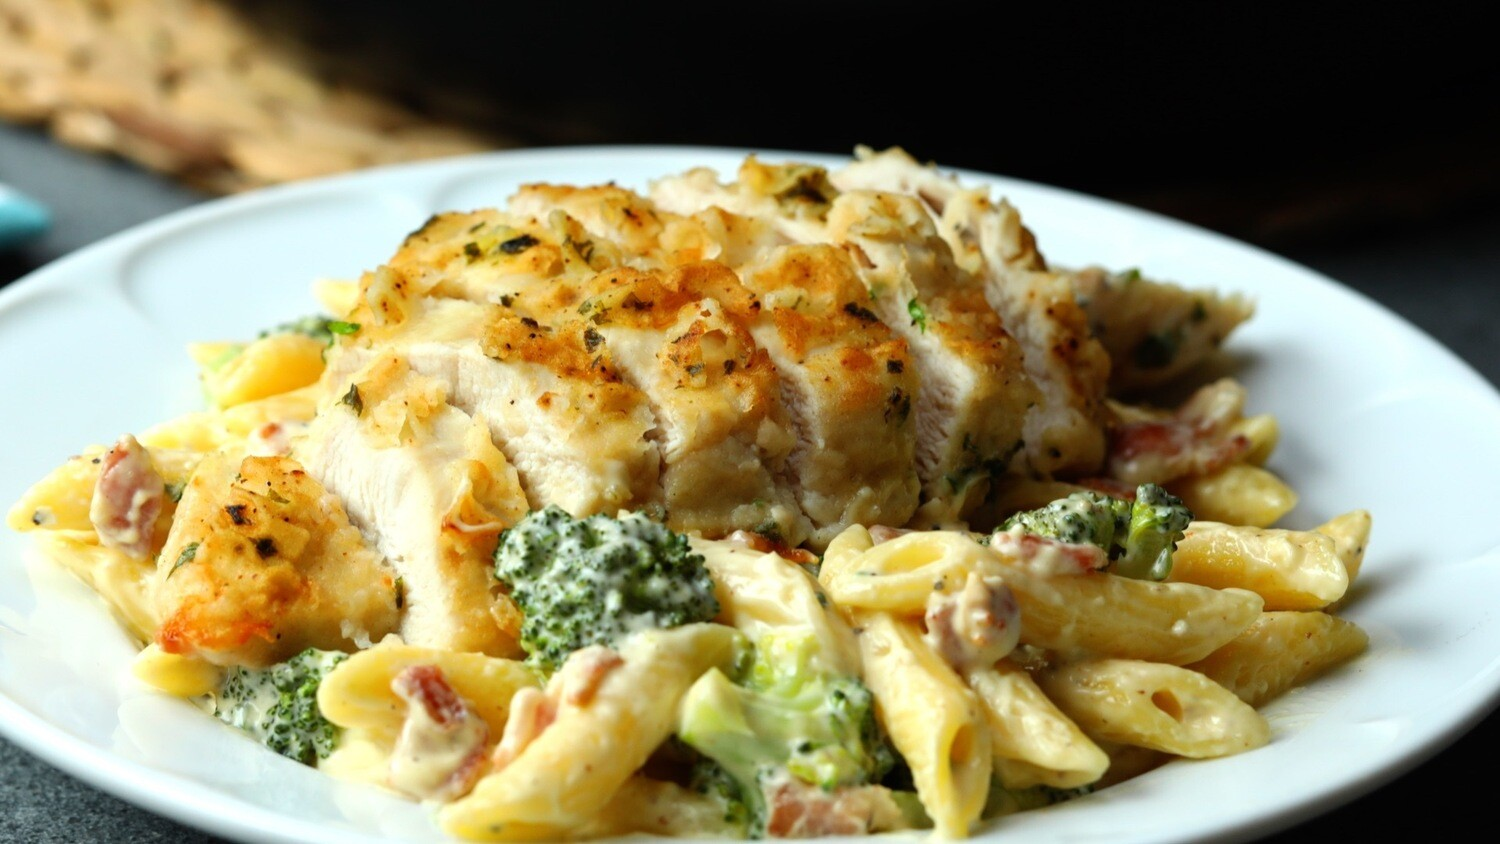 Baked Penne with Crispy Chicken